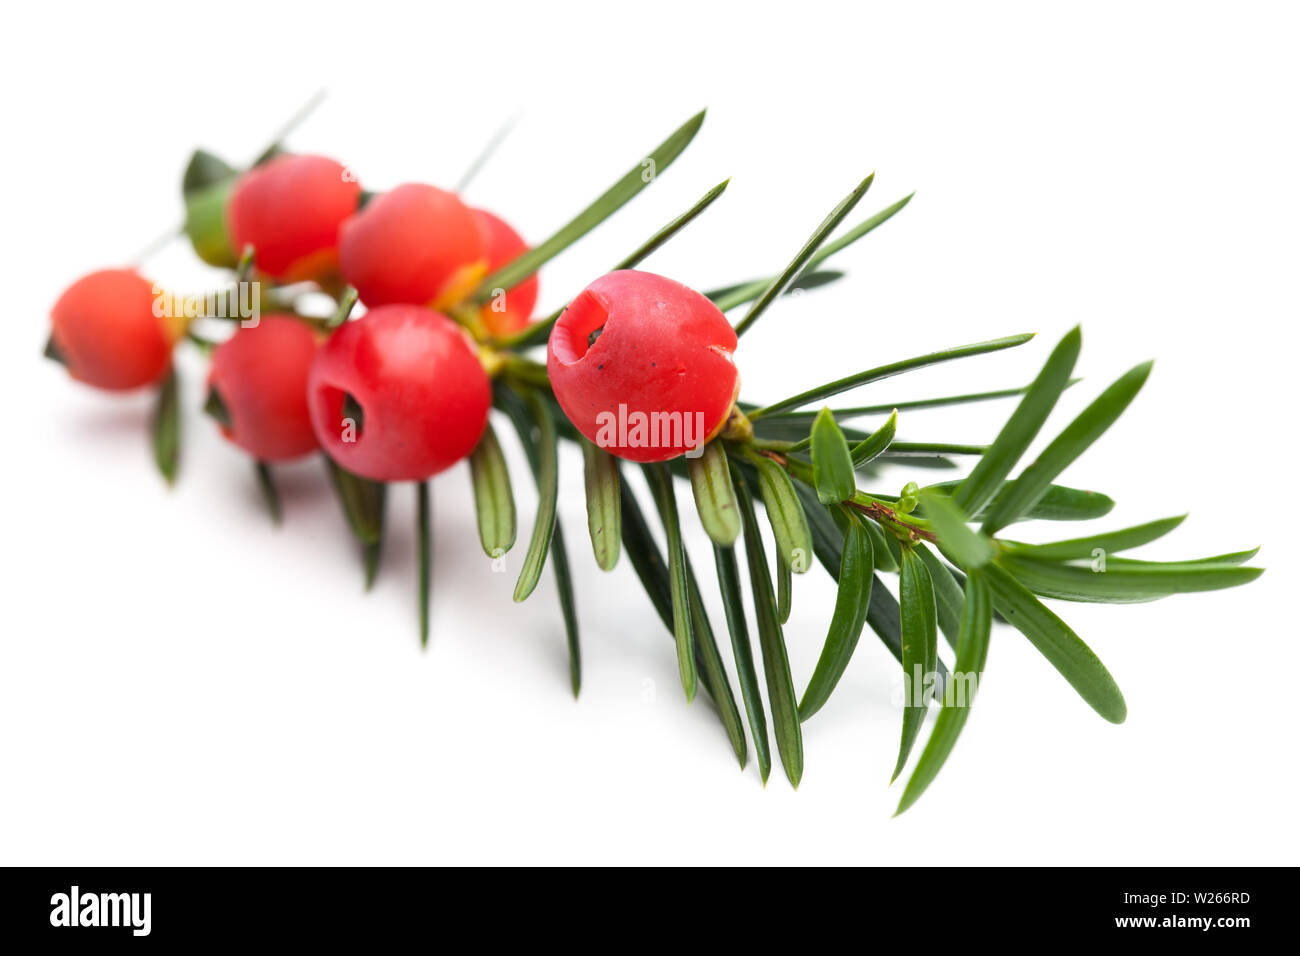 healing / medicinal plants: healing plants: Branch of a yew (Taxus baccata) with berries - Stock Image